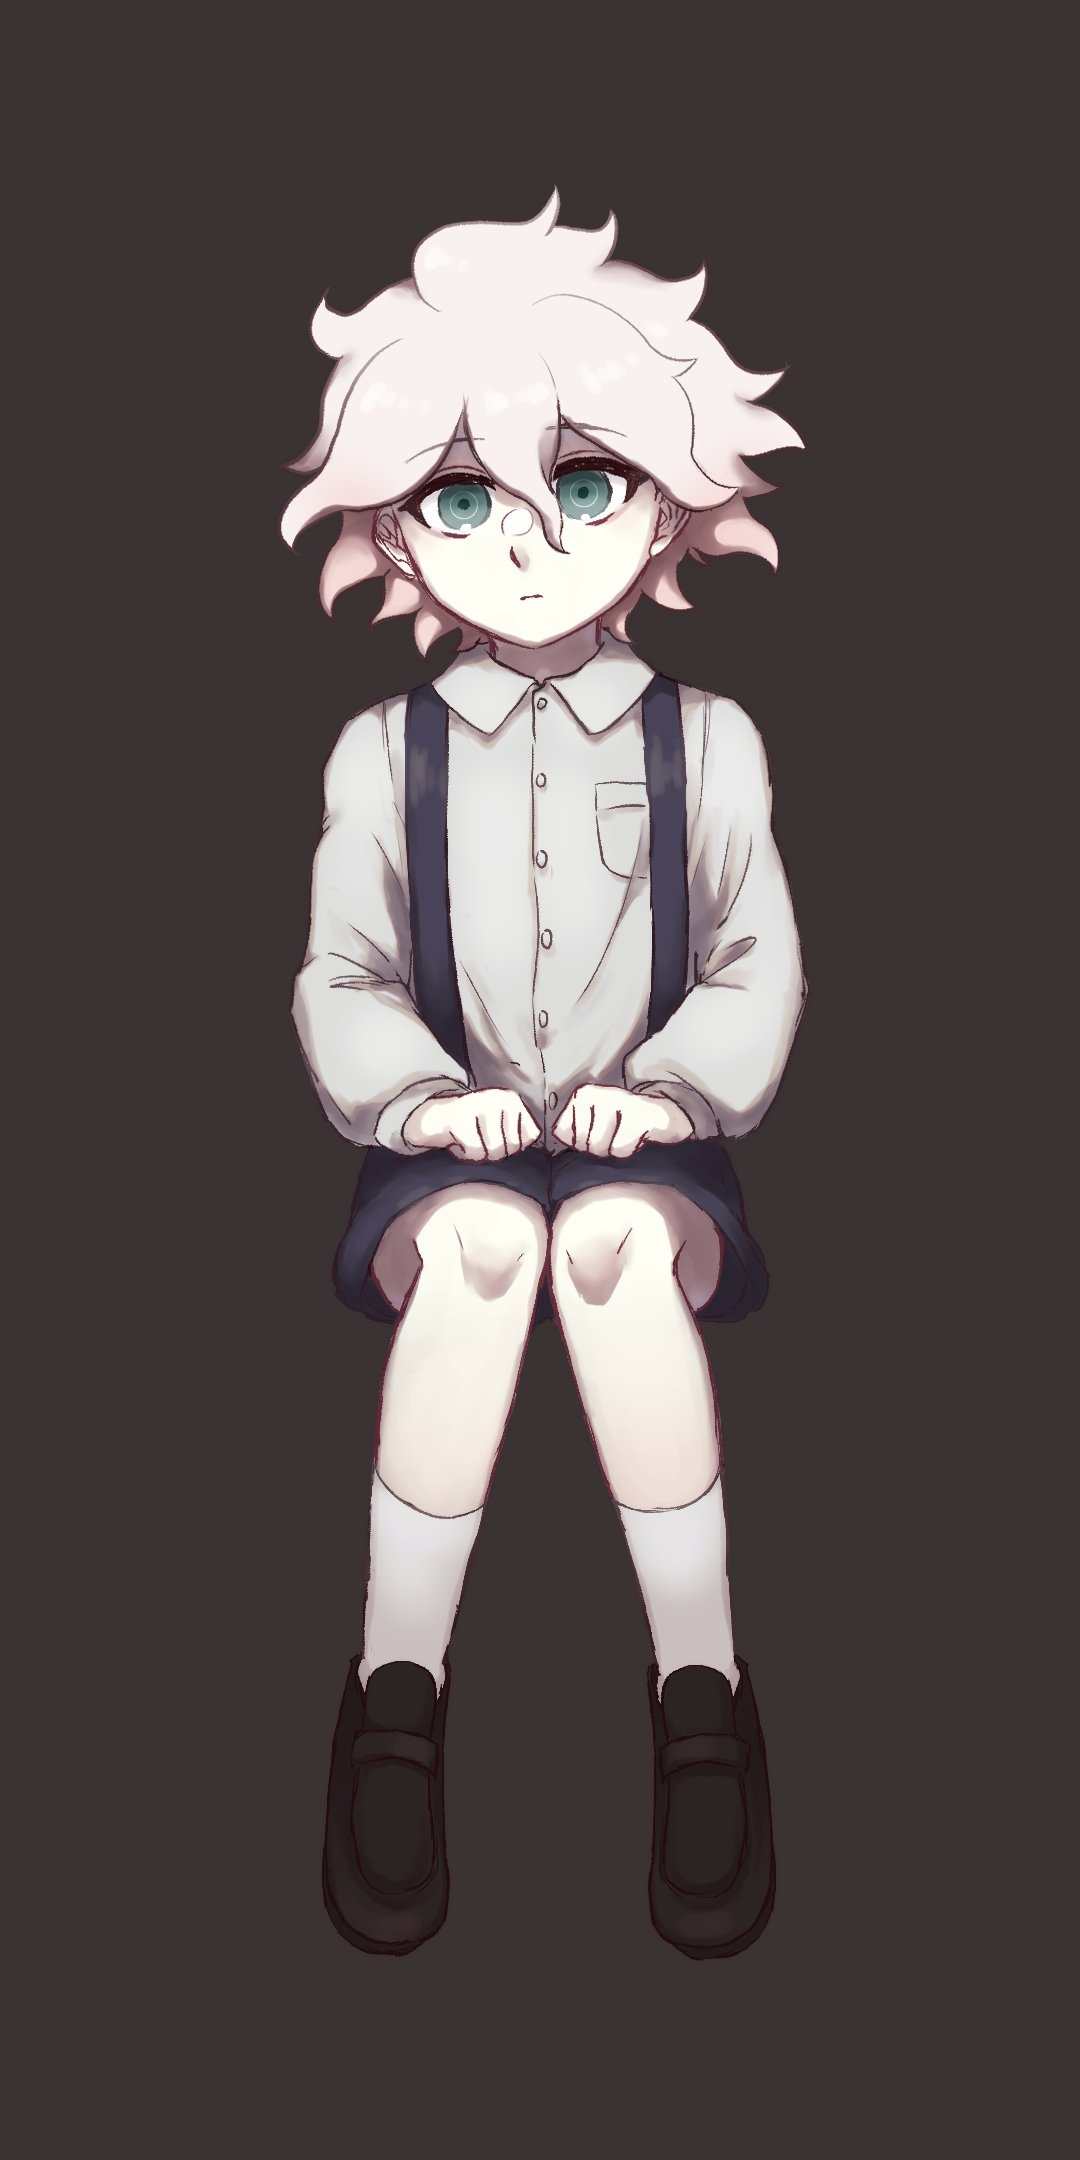 1boy bangs black_background black_footwear black_shorts breast_pocket child closed_mouth collared_shirt commentary_request danganronpa_(series) danganronpa_2:_goodbye_despair eyebrows_visible_through_hair full_body grey_eyes highres invisible_chair komaeda_nagito long_sleeves looking_at_viewer male_focus pocket shirt shoes shorts simple_background sitting socks solo suspender_shorts suspenders tetose white_hair white_legwear white_shirt younger